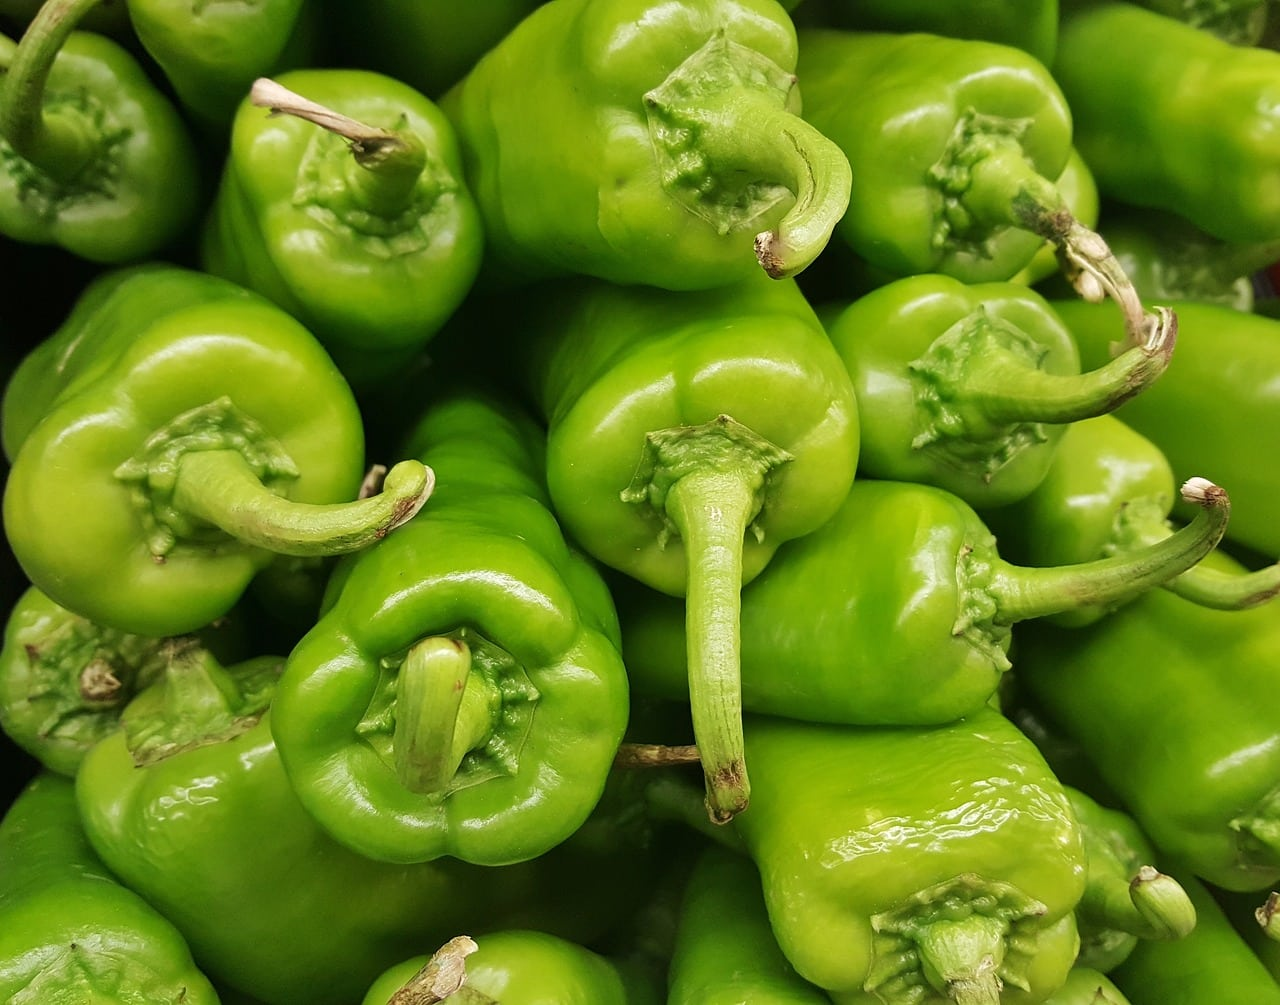 Anaheim Pepper Nutrition: How Healthy Are They?